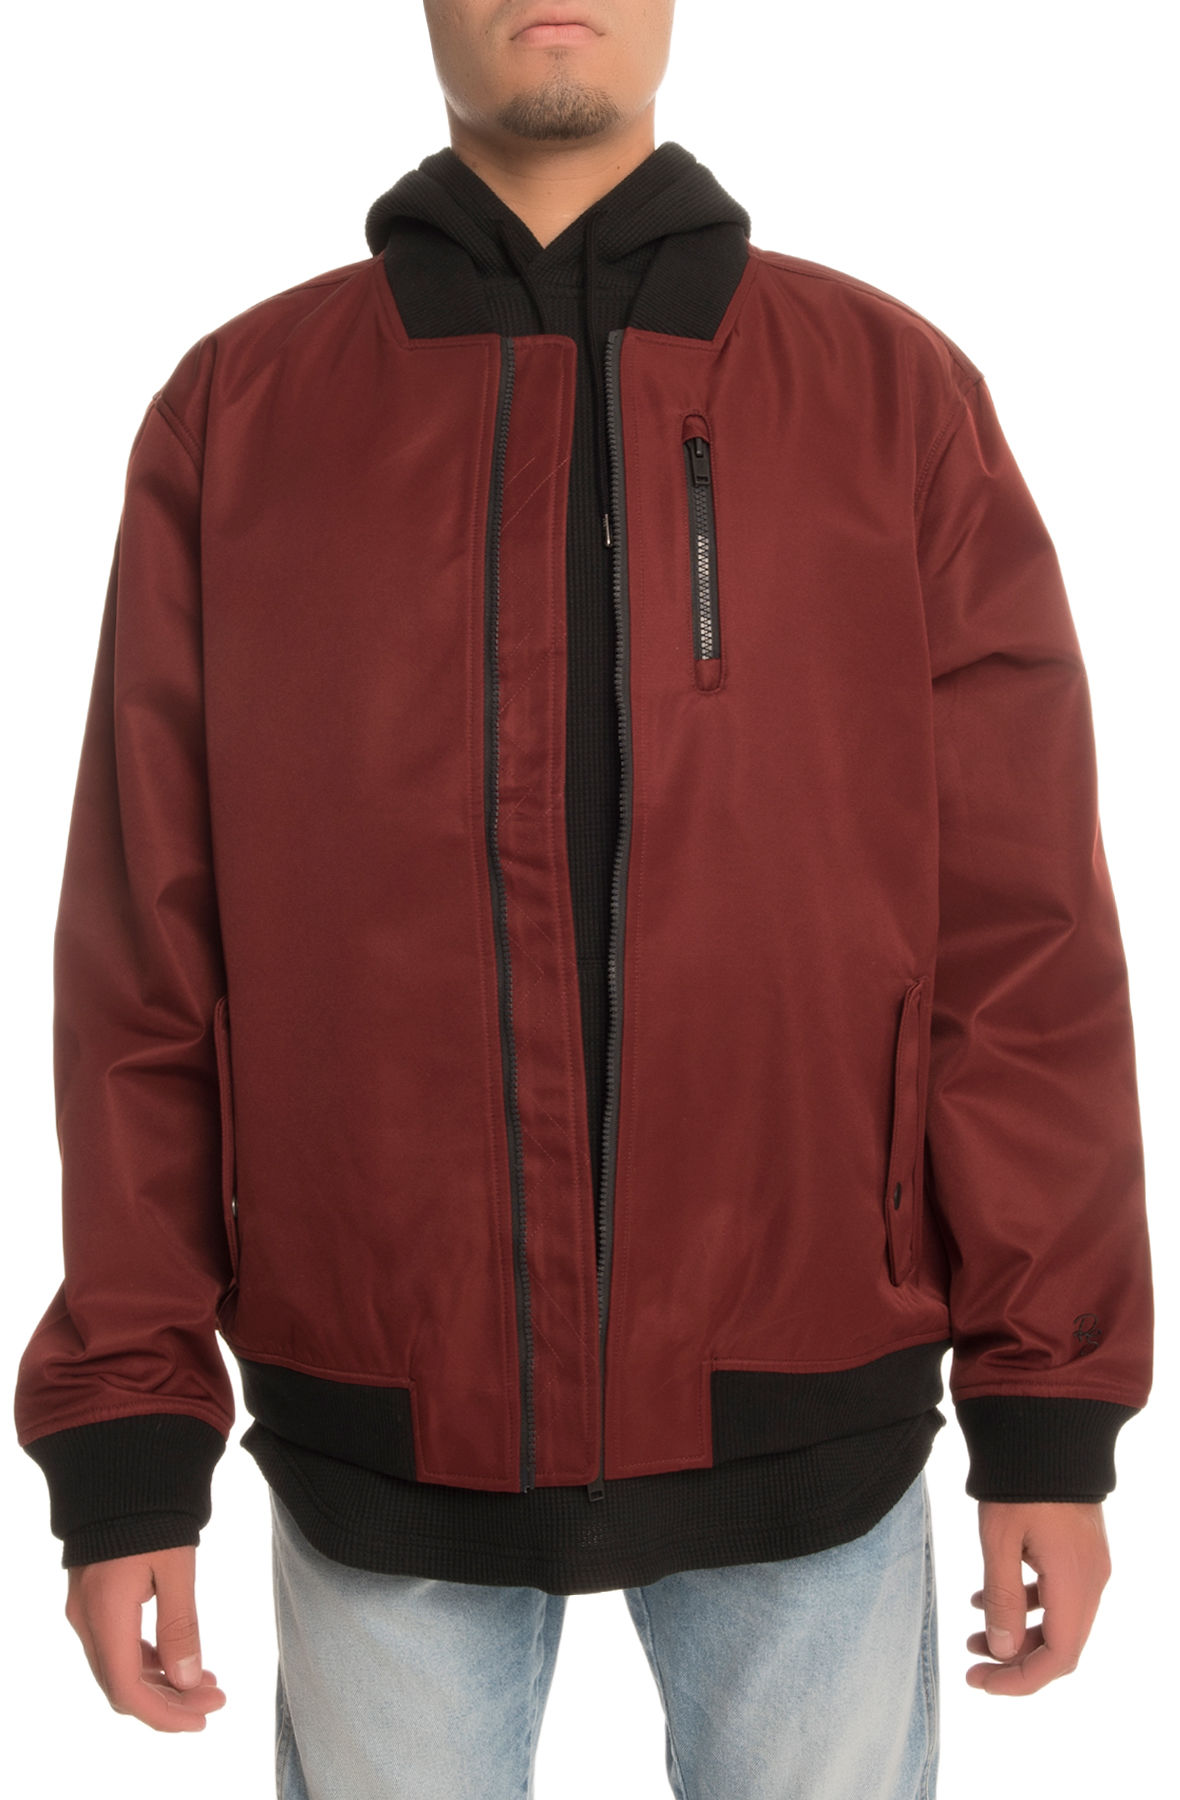 Image of The Ground 1 Bomber Jacket in Red